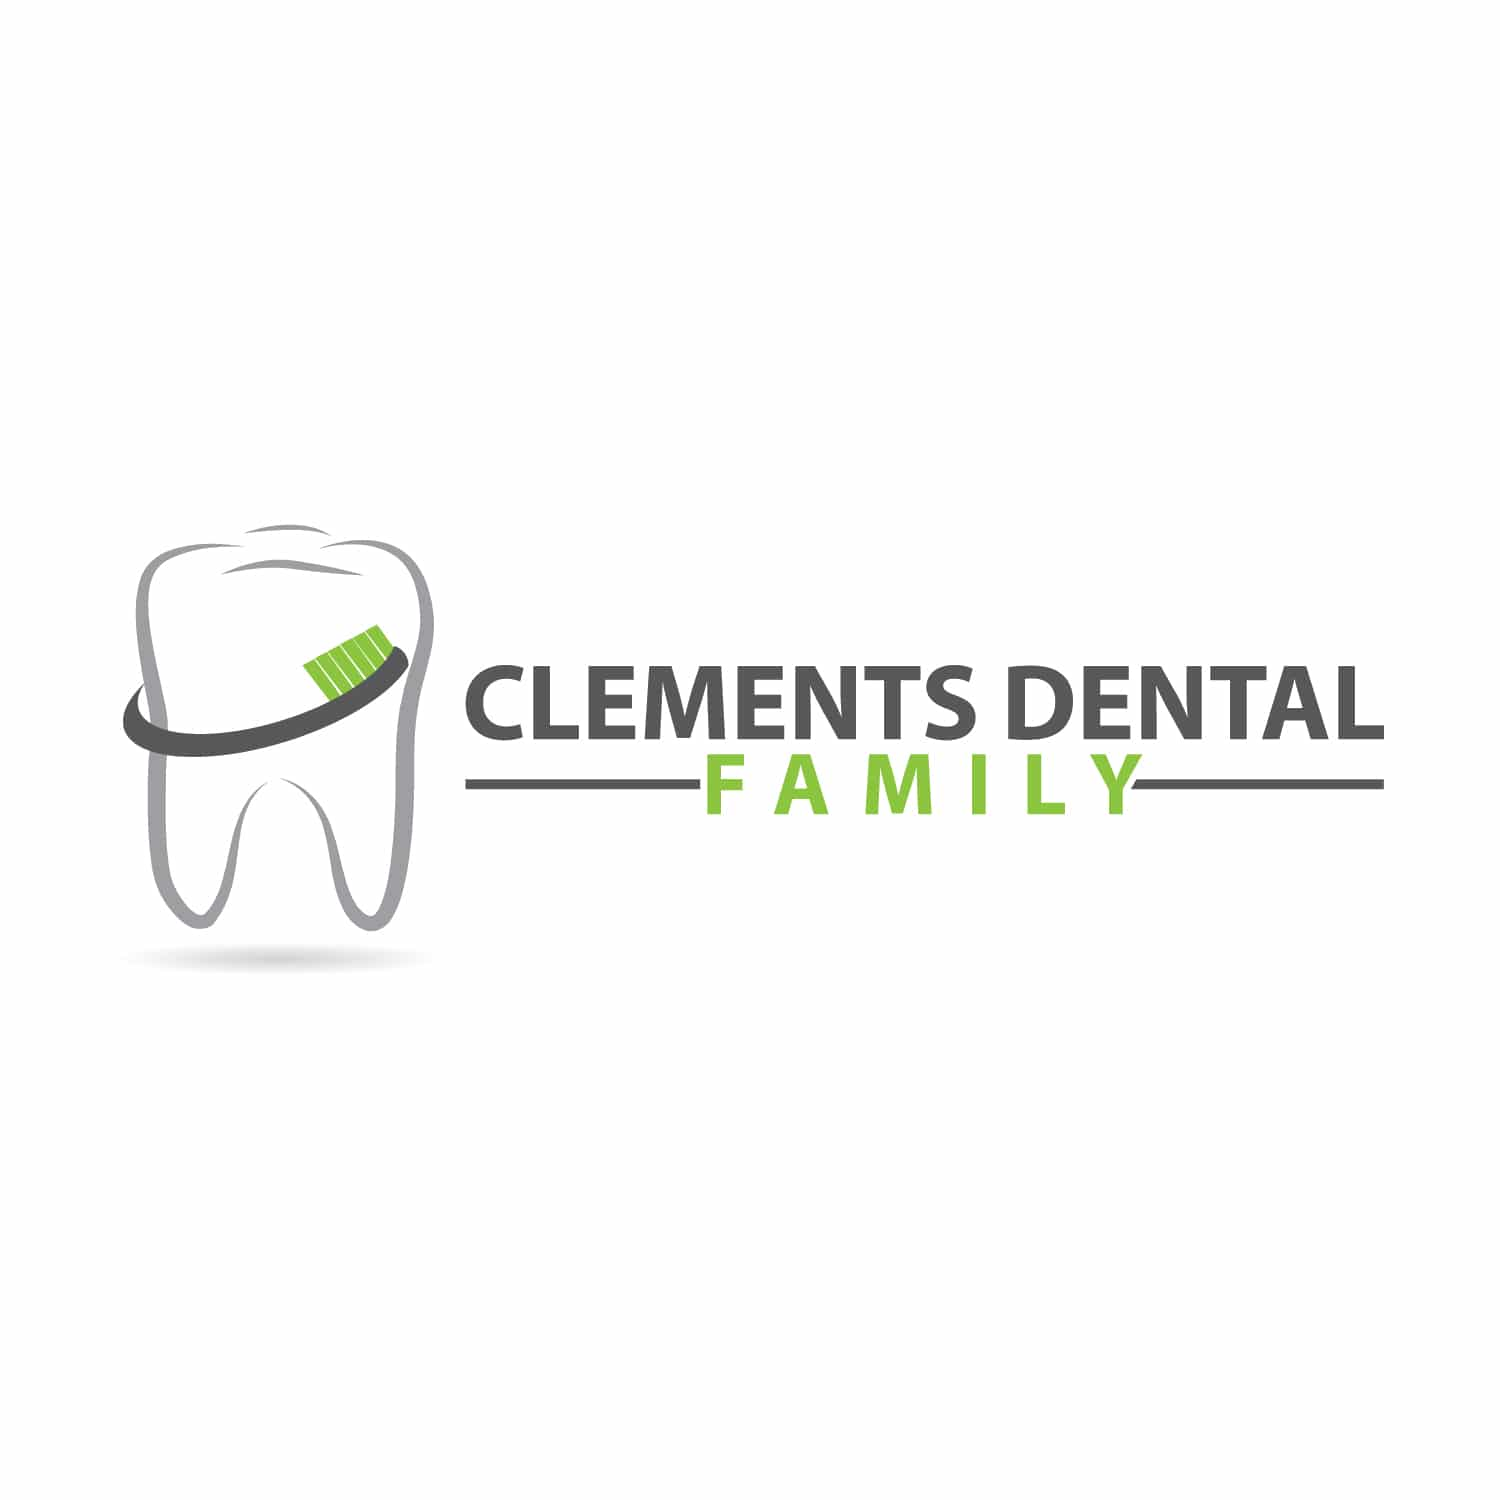 Clements Dental Family